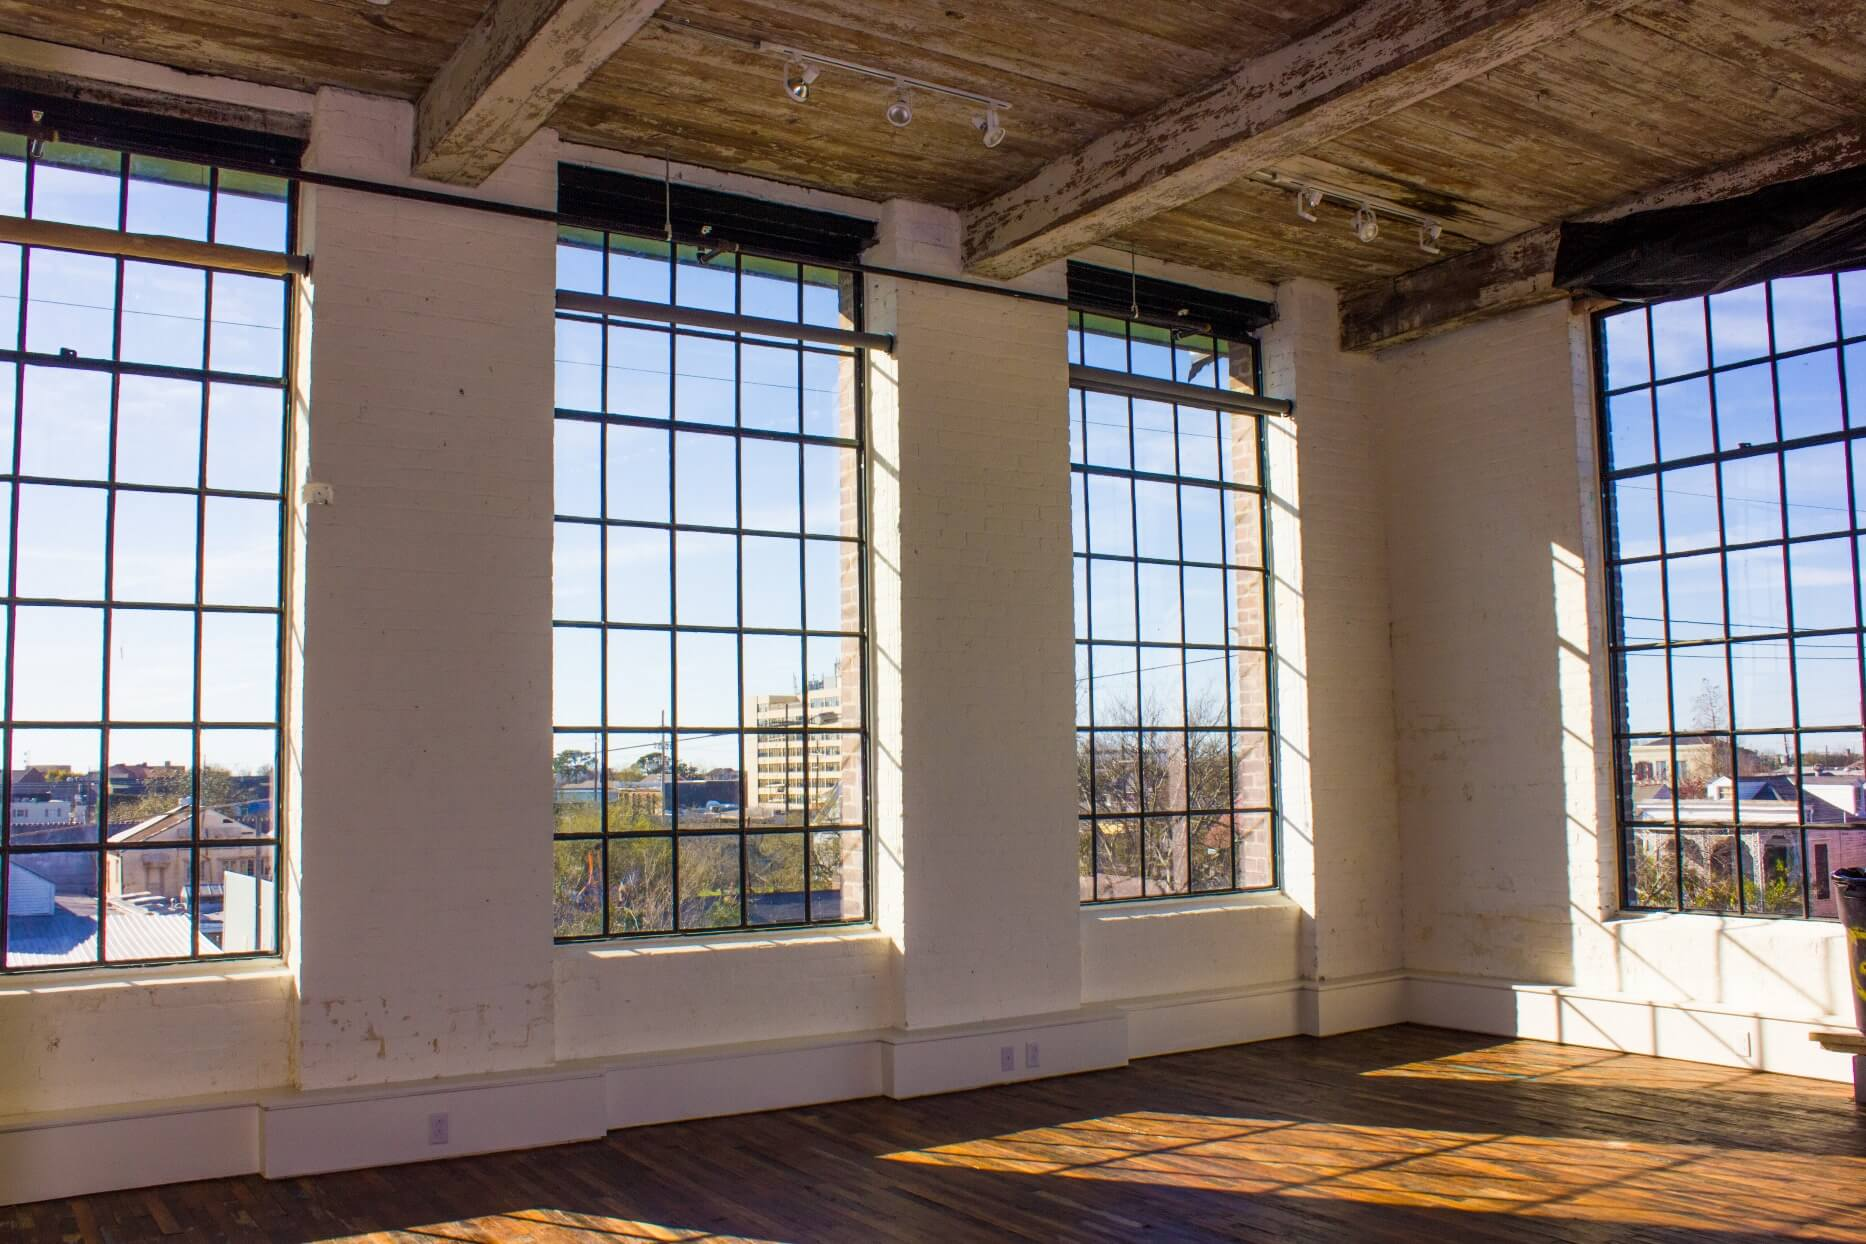 Windows with views of city